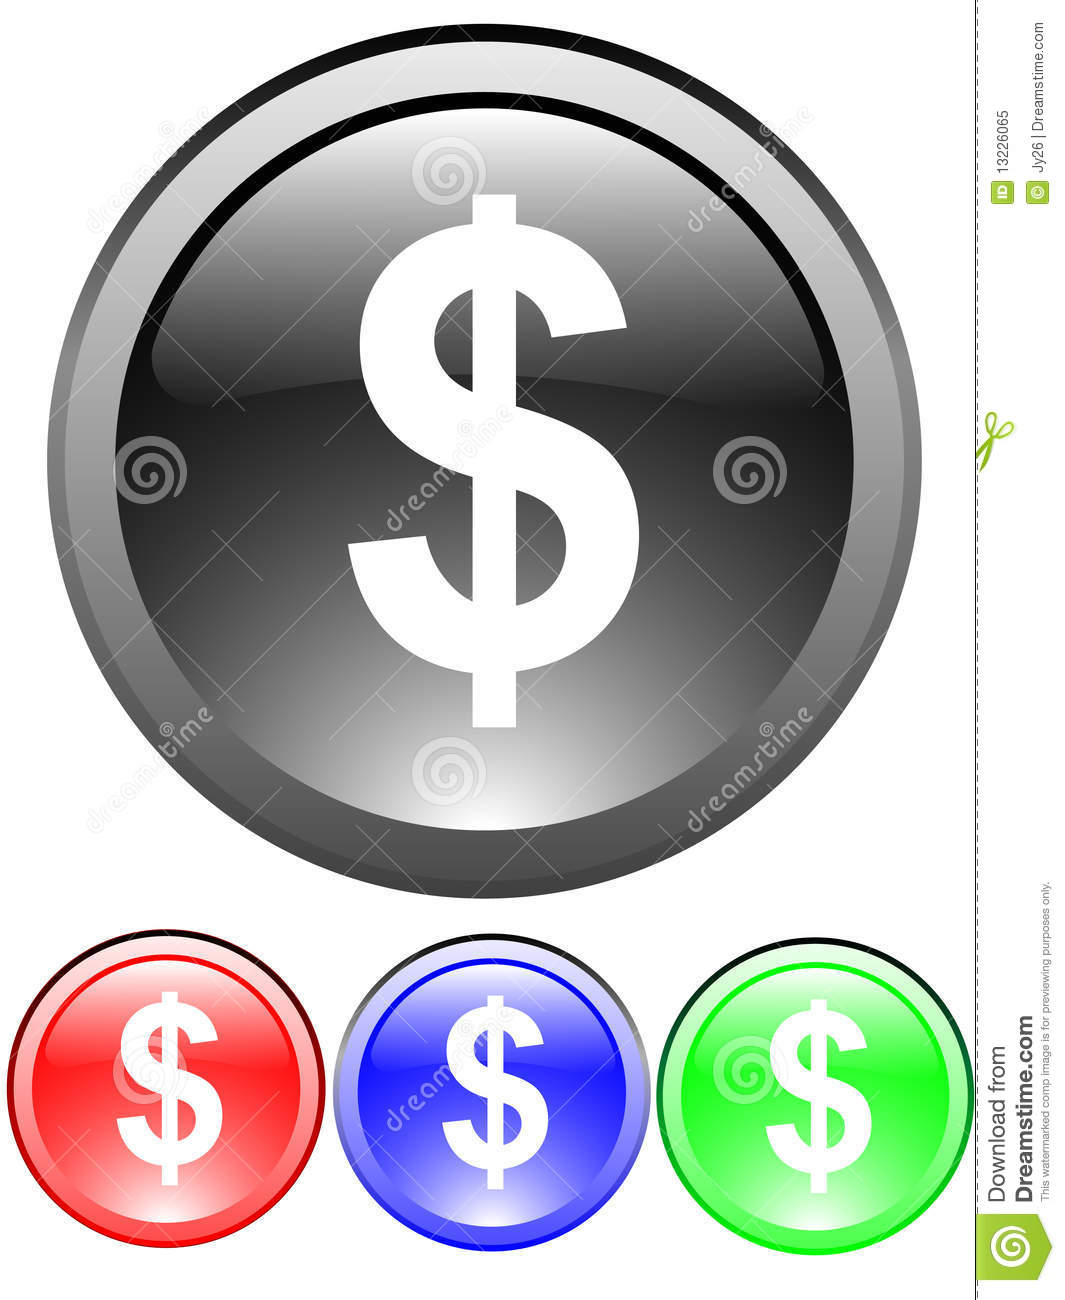 Dollar Sign Icon Royalty Free Stock Photo Image 13226065